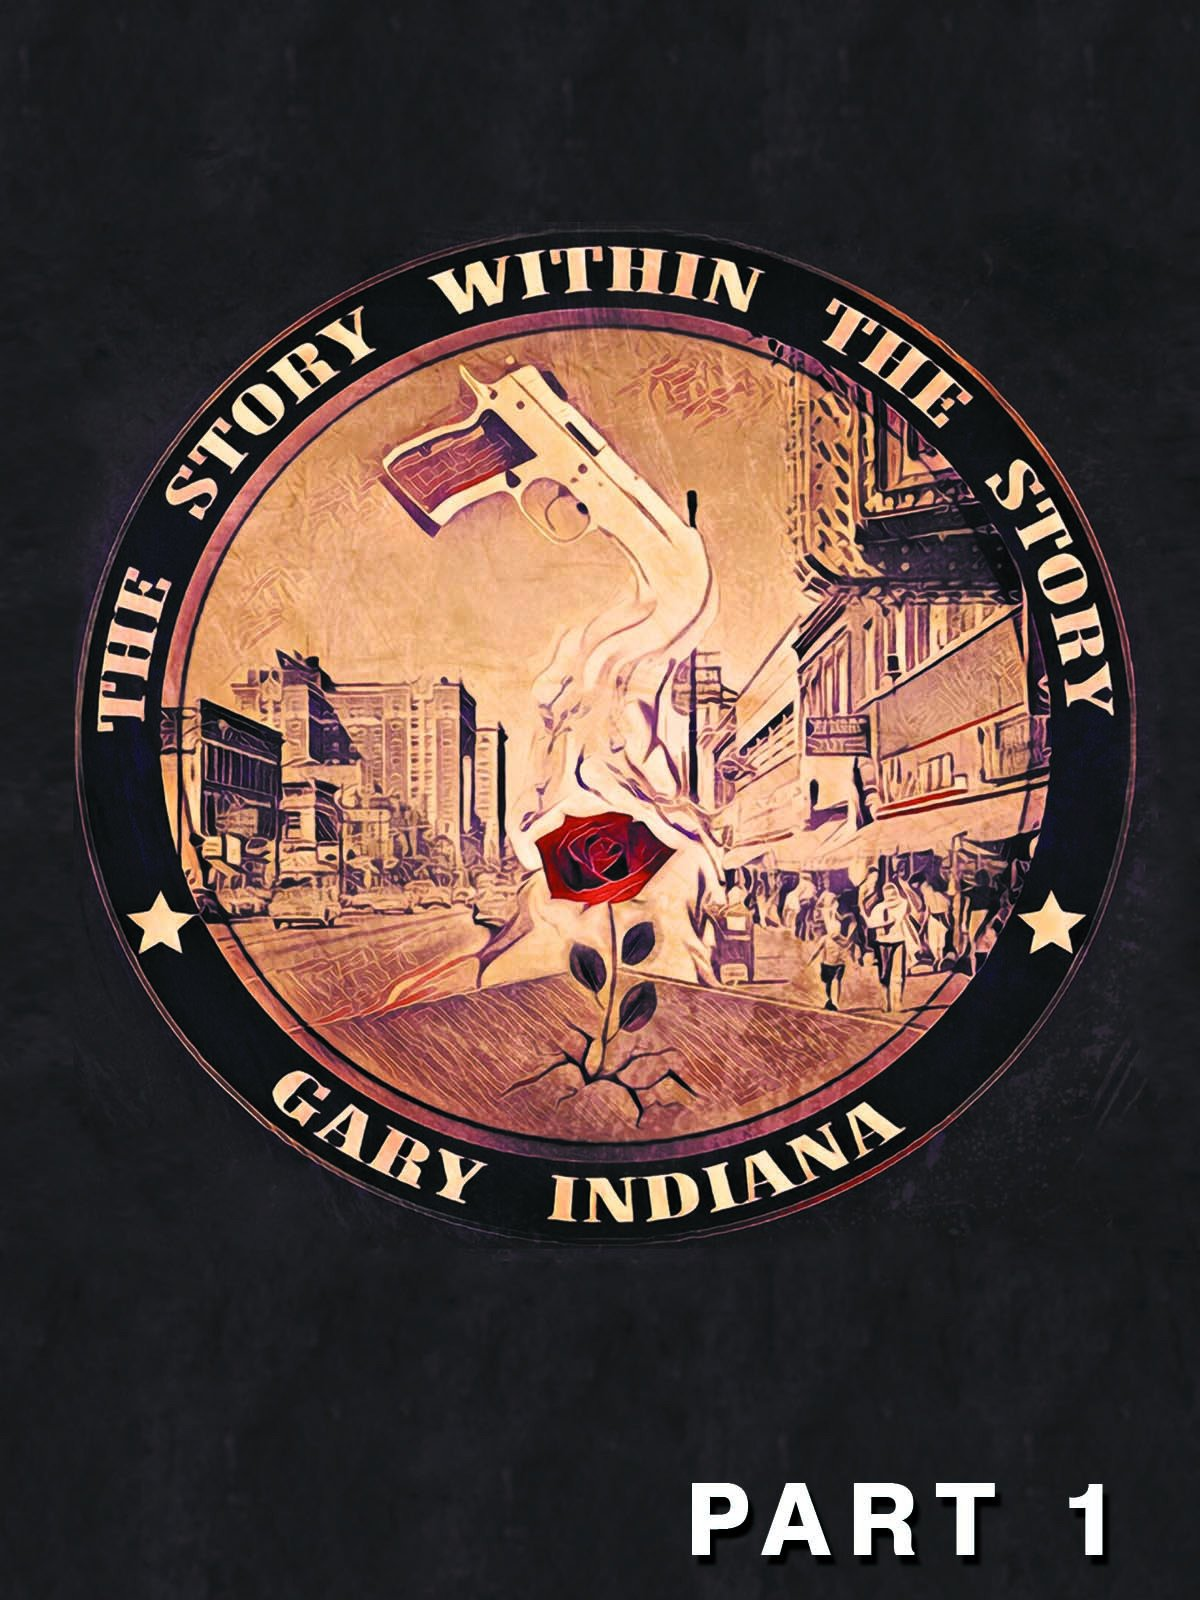 The Story Within The Story : Gary, Indiana (Part 1)